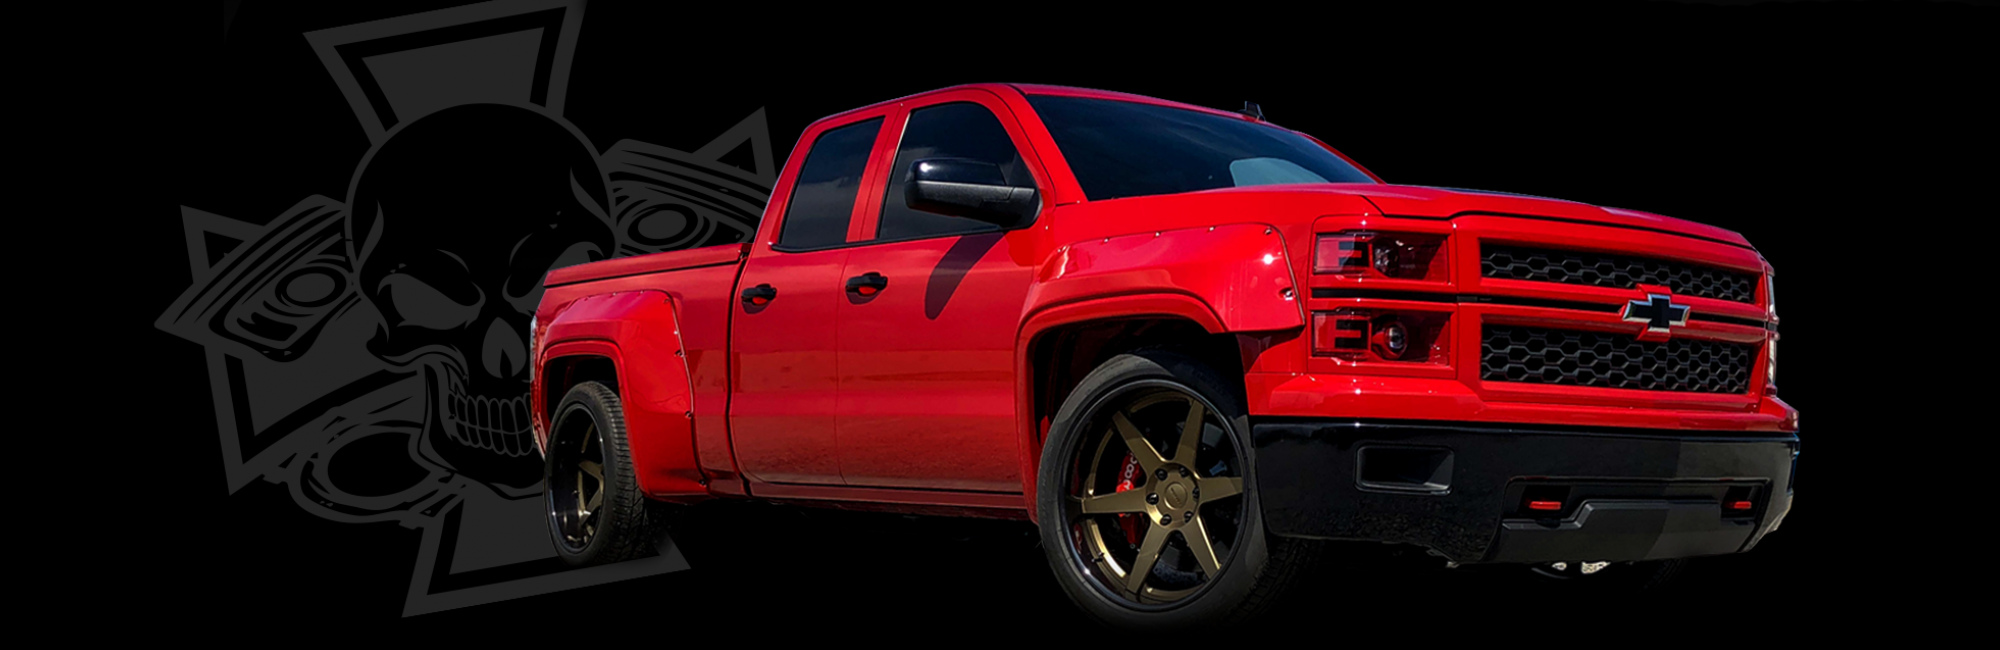 2014 Silverado Lowered Widebody Forgeline Compcams